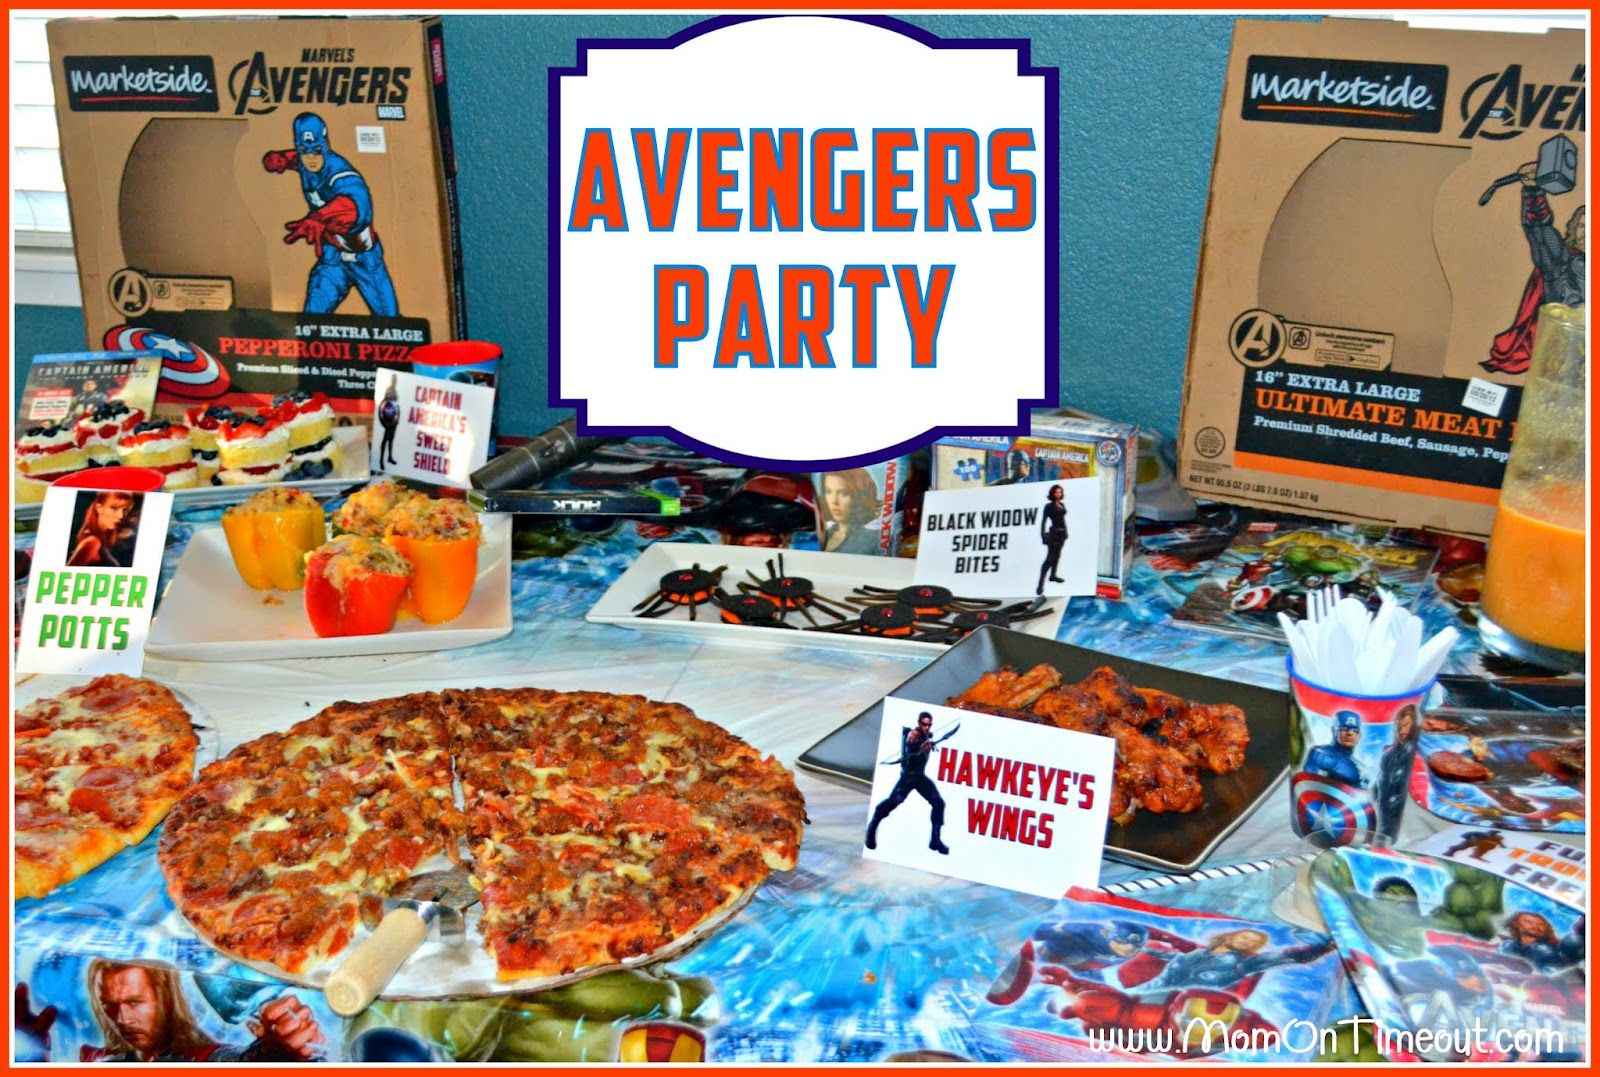 Calling All Avengers An Avengers Party Stuffed peppers